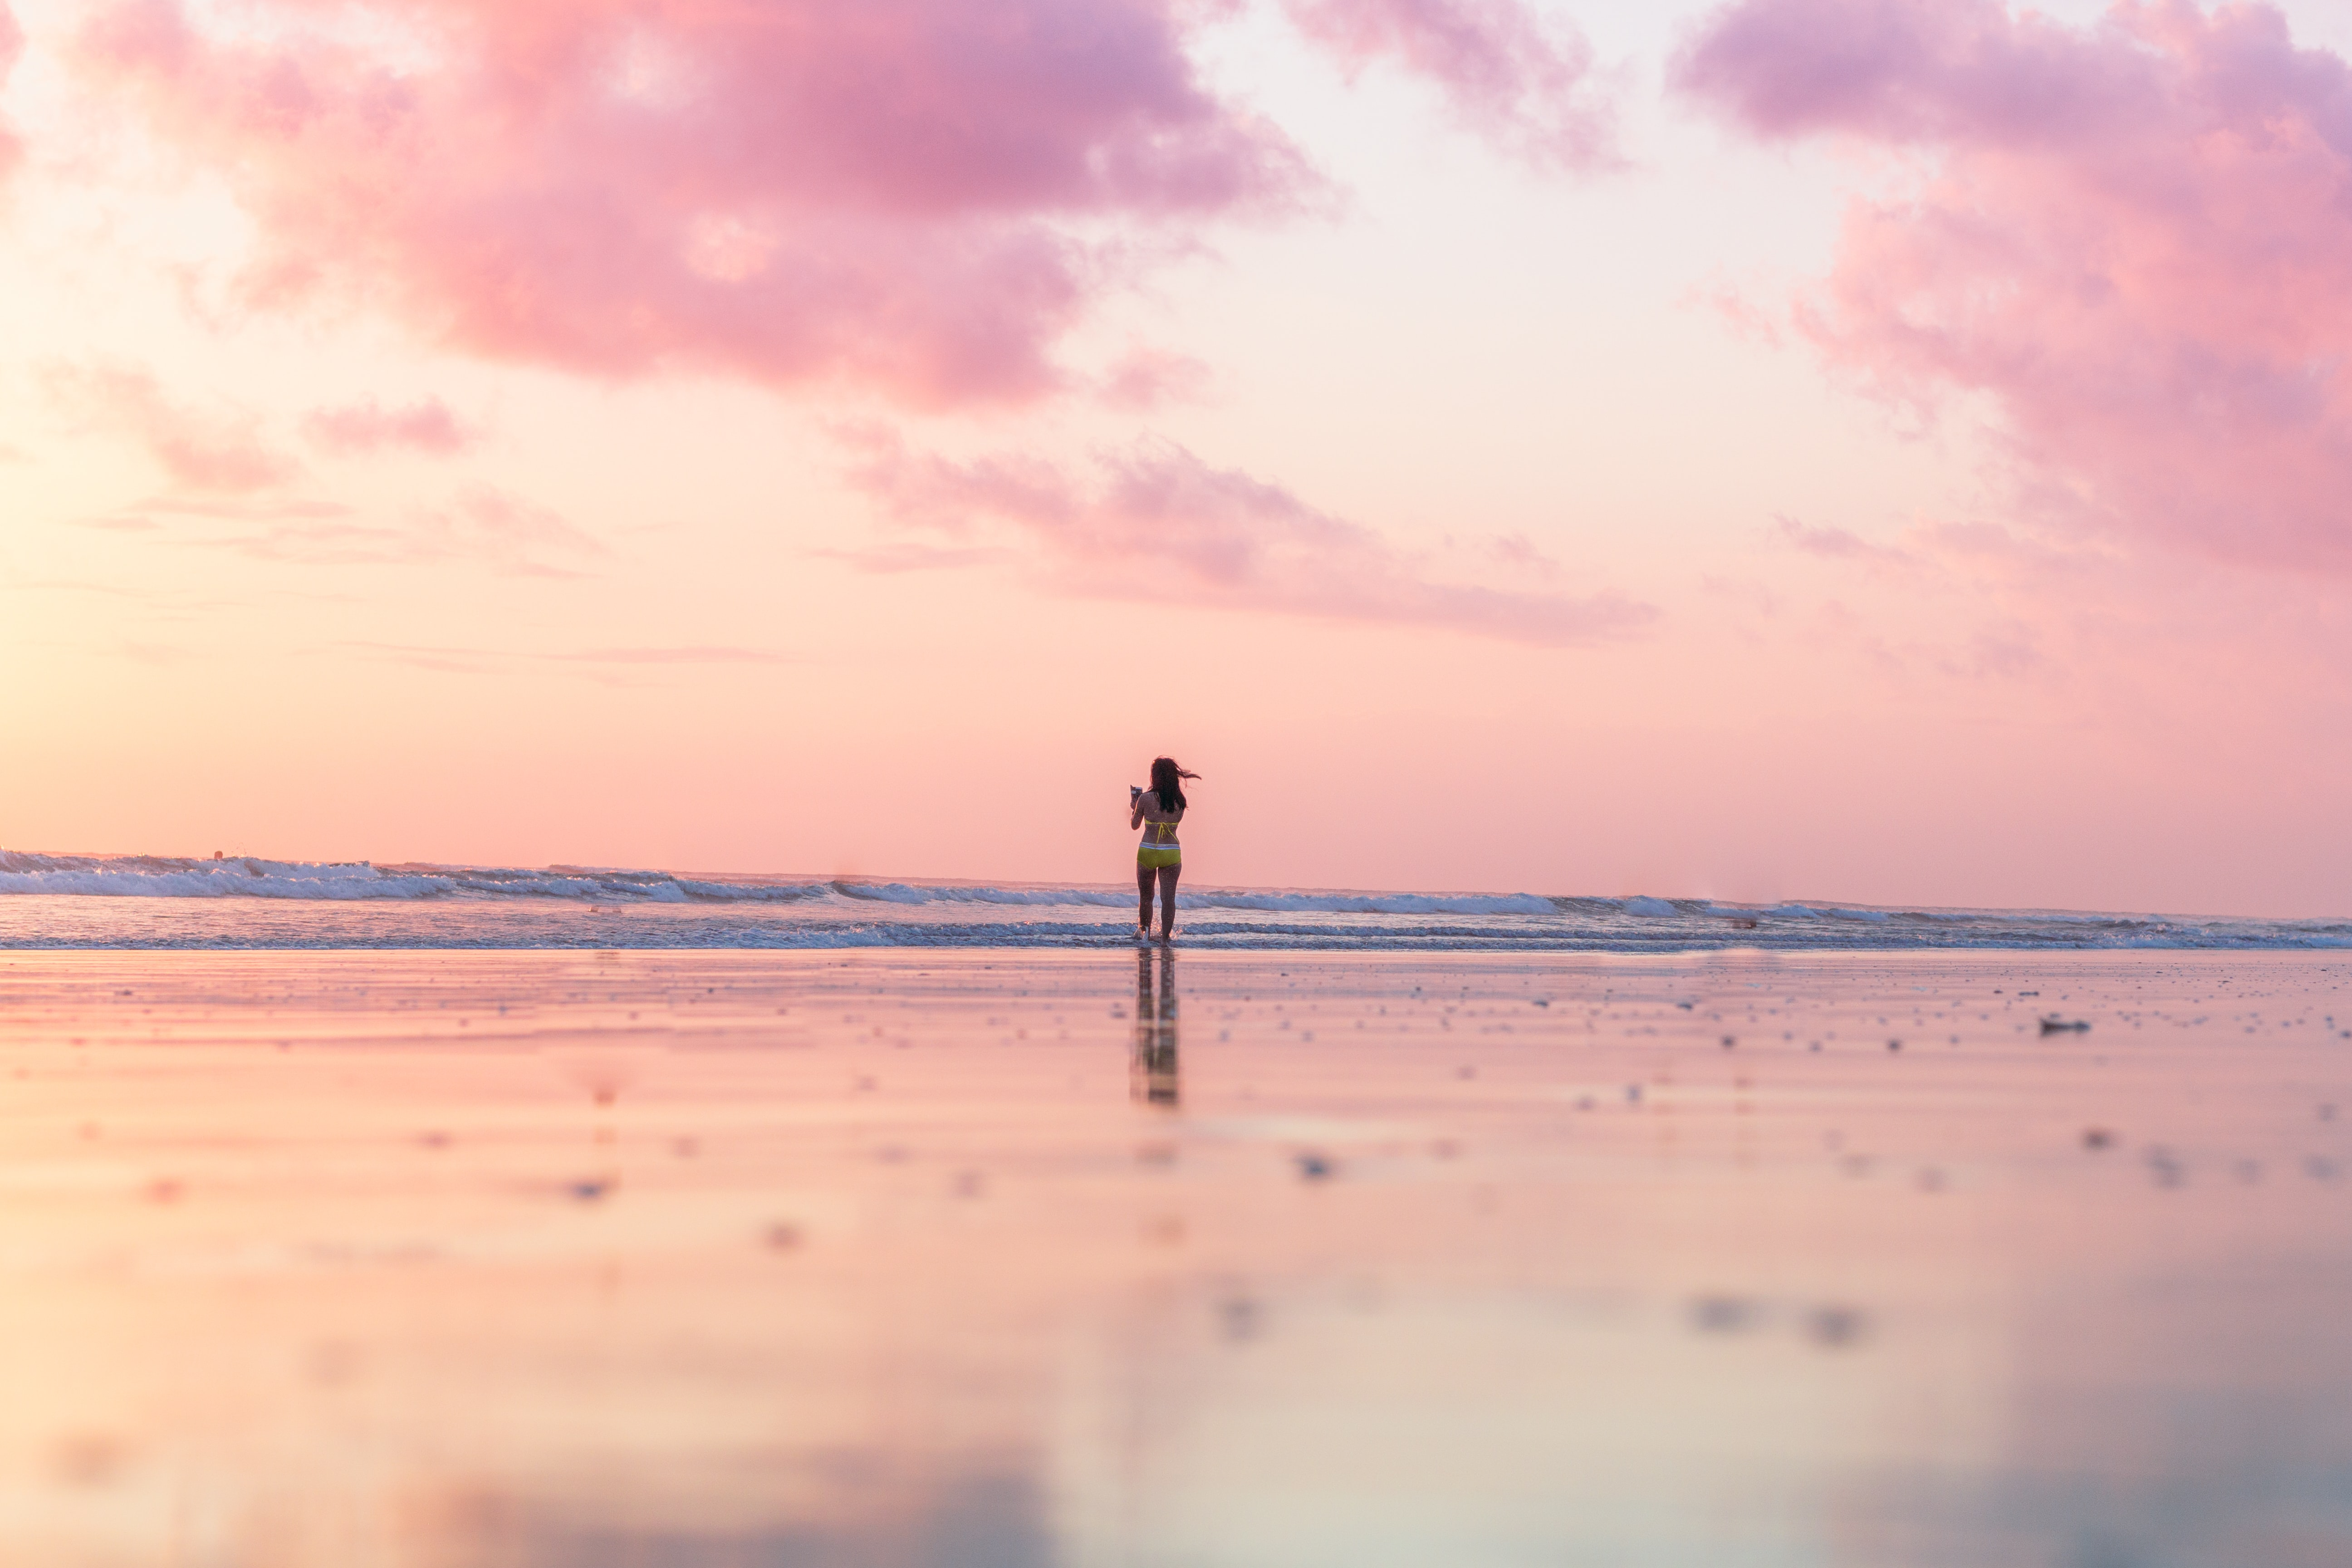 woman standing on seashore in front of body of water